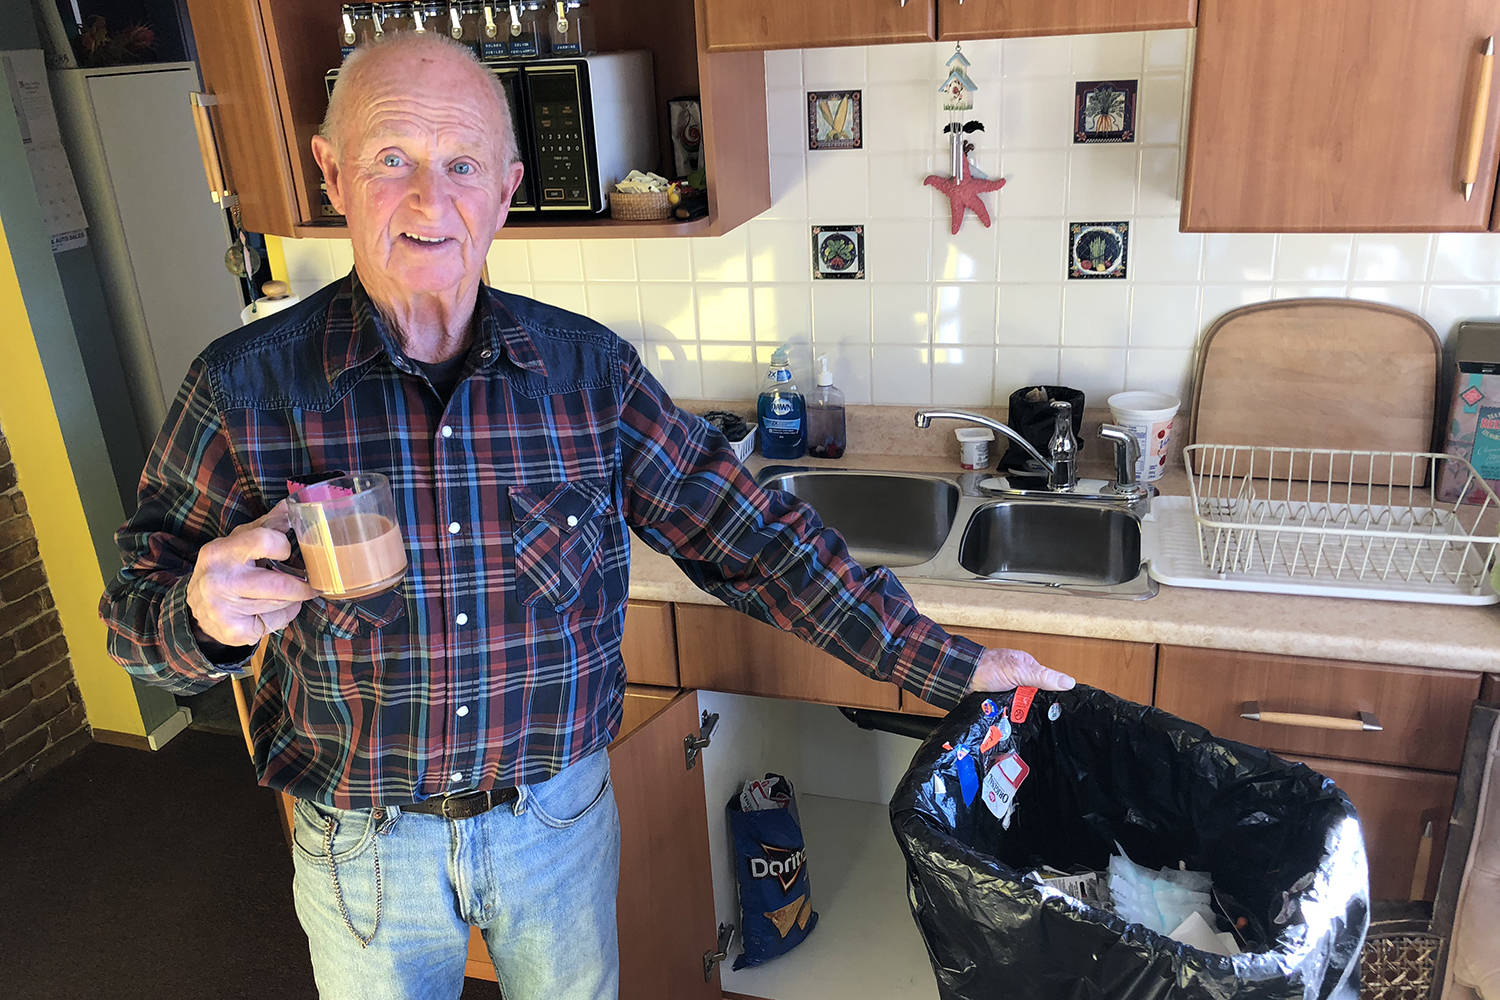 Dust flies off the contents of Ken Wardroper's garbage can he keeps under the sink. The can remains half empty, still not full after three years. (Travis Paterson/News staff)